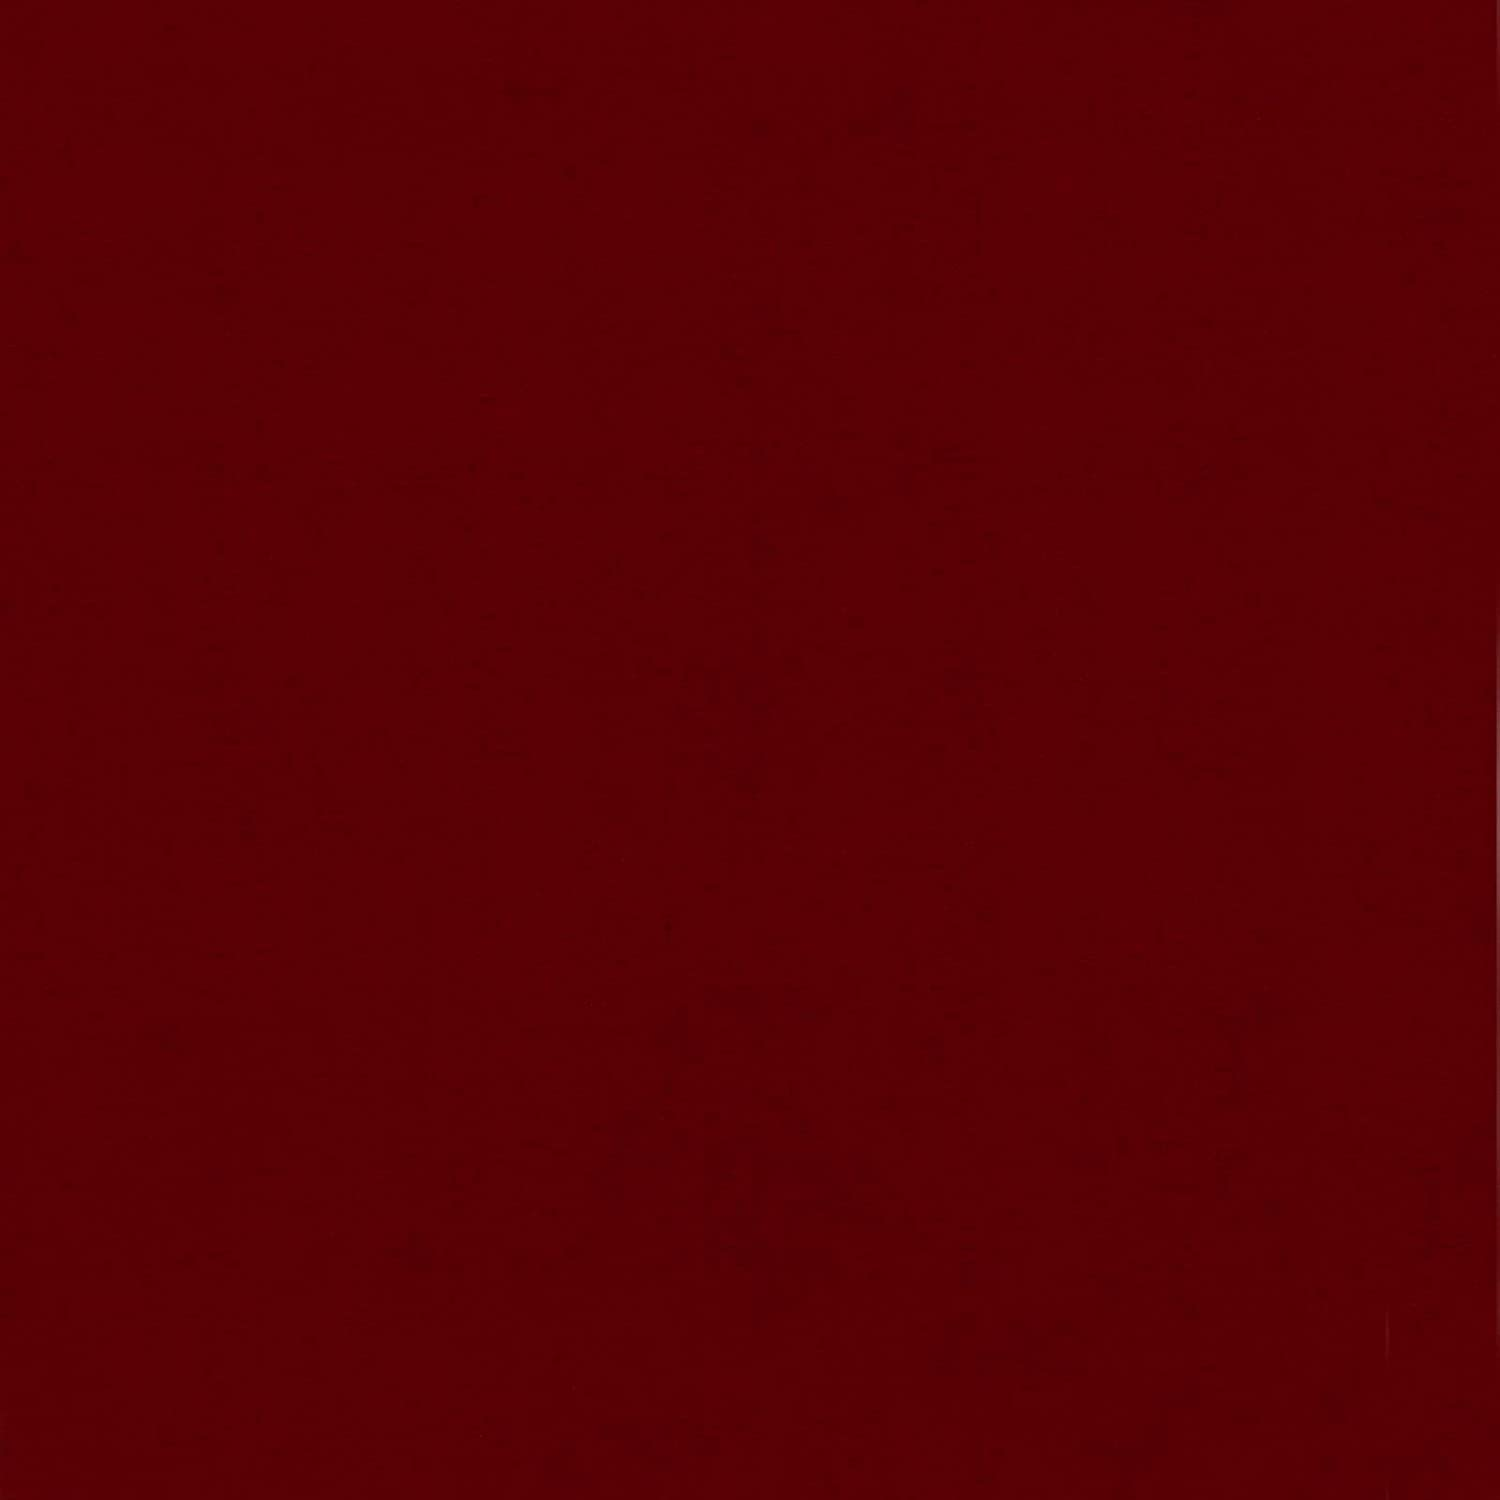 Dark Red Cardstock 25 Sheets 80Lb Cover 12 x 12 inch